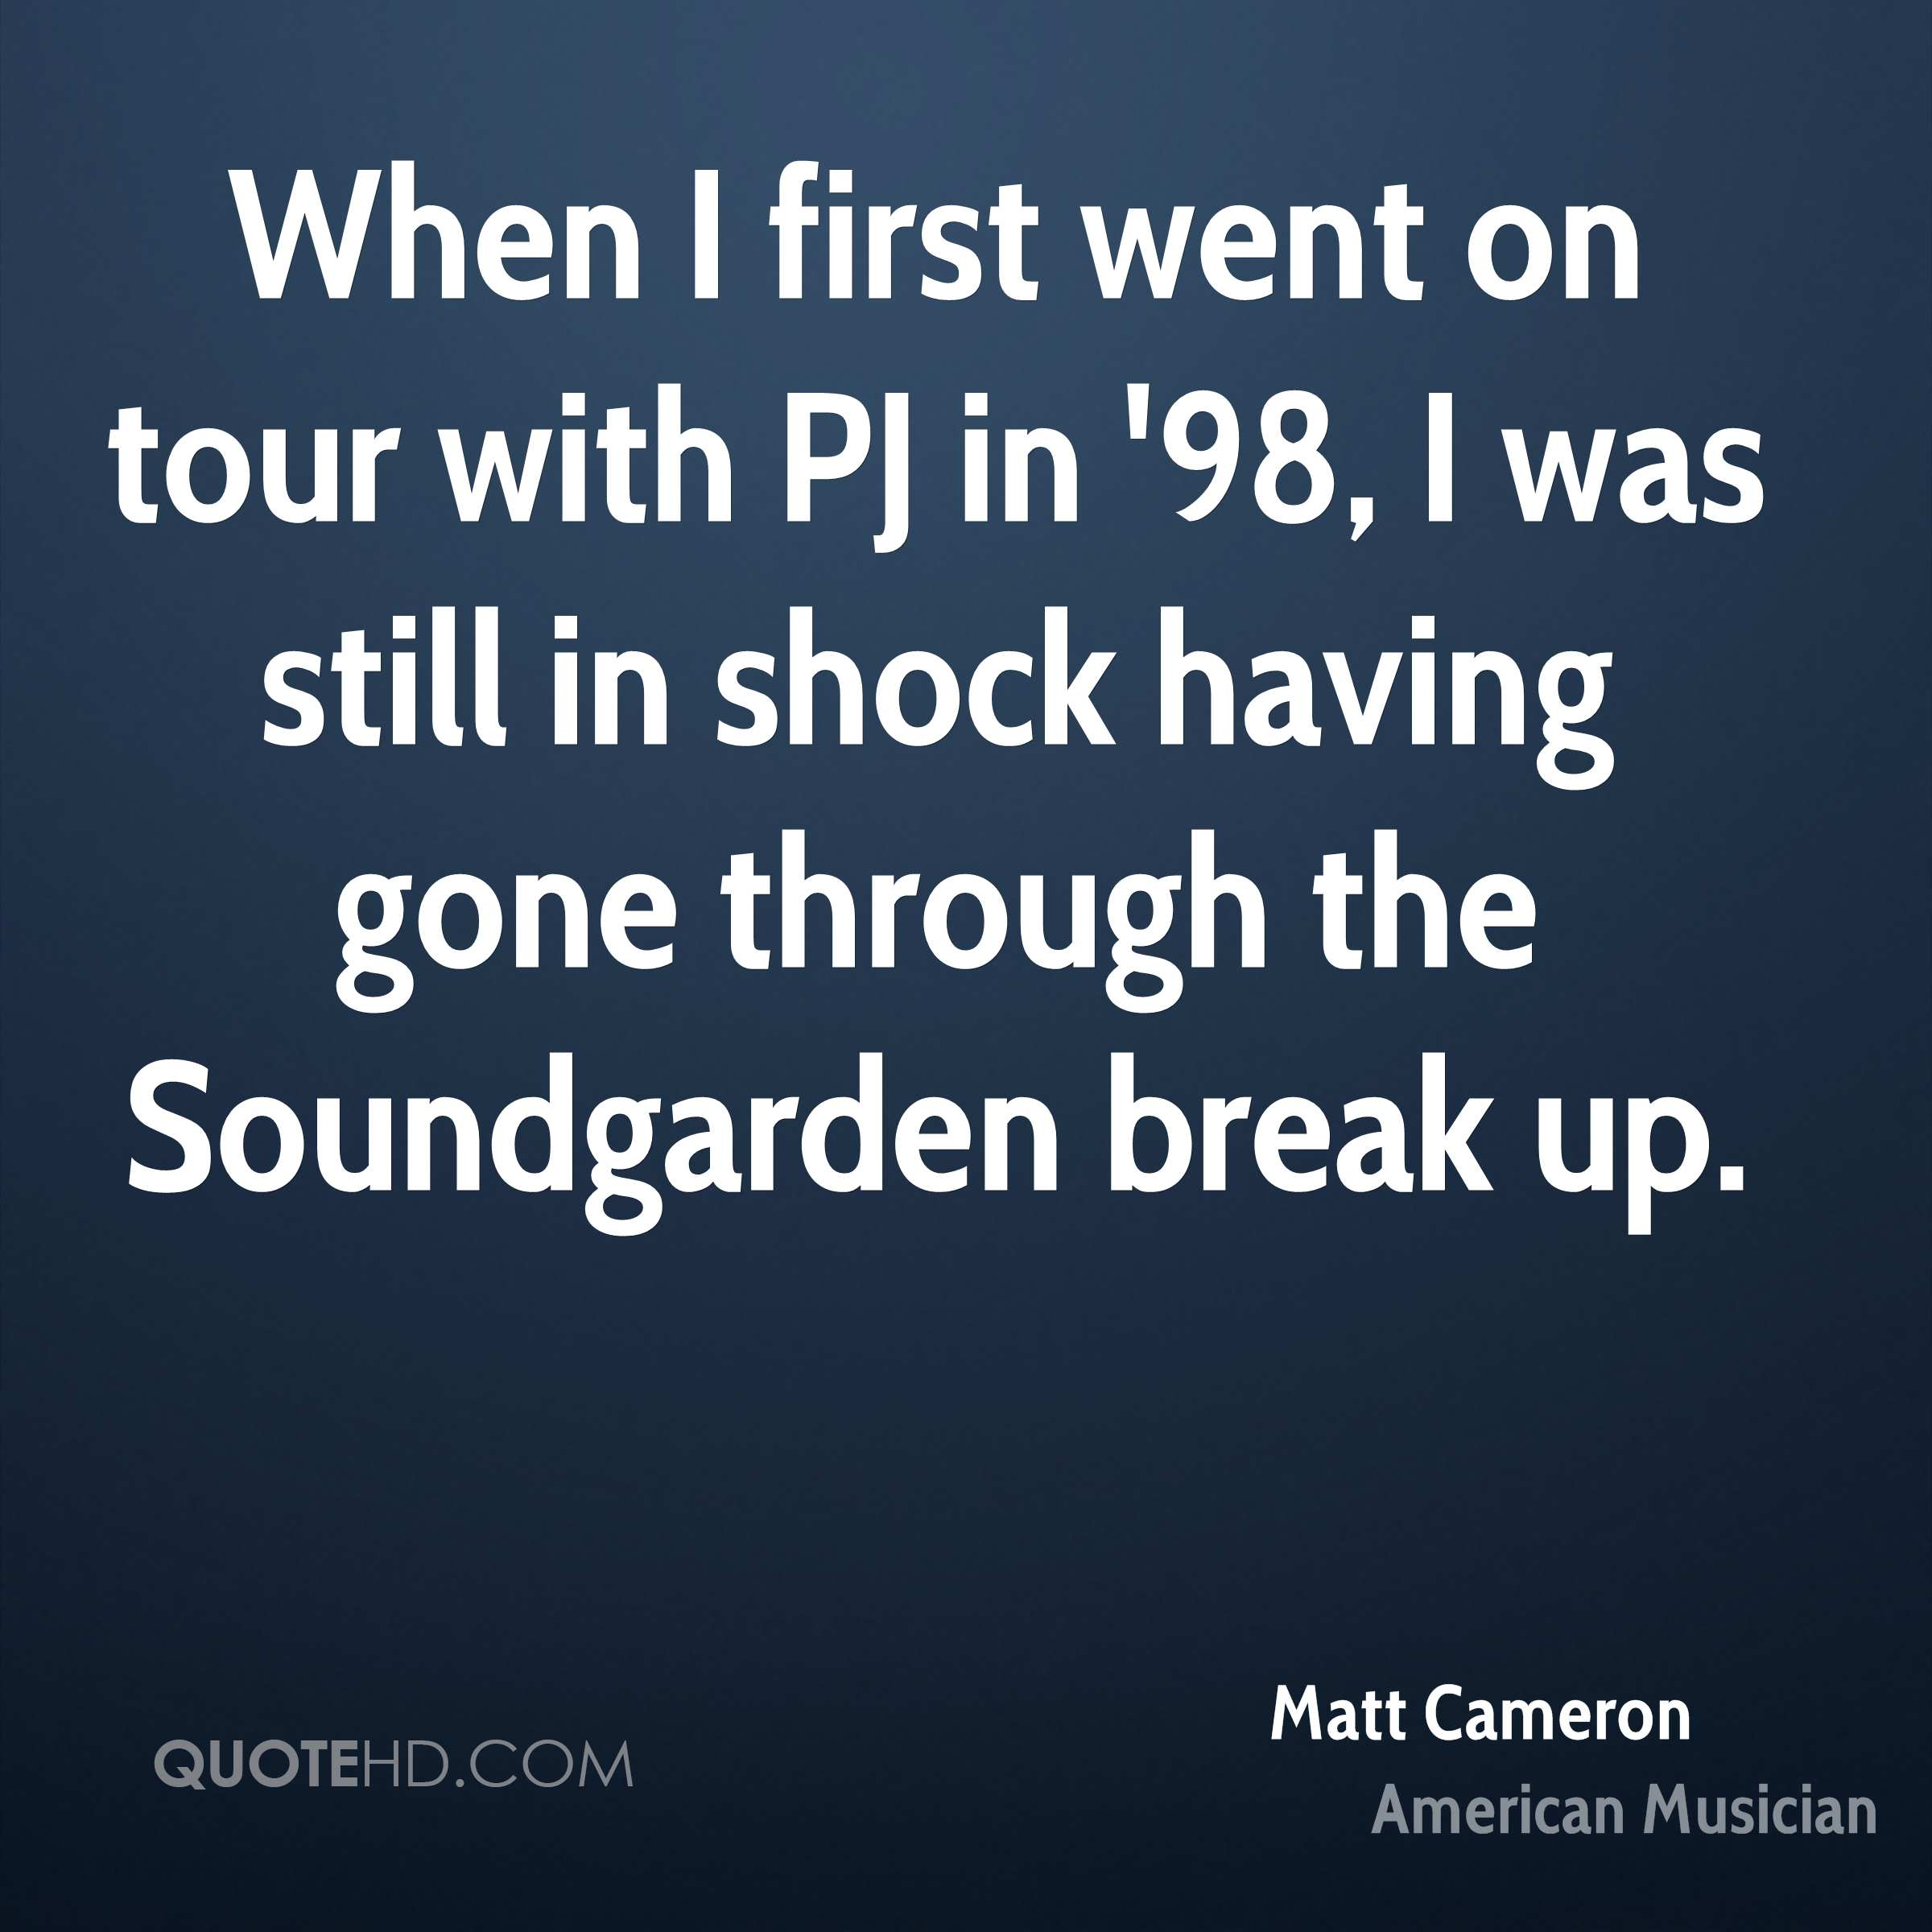 When I first went on tour with PJ in '98, I was still in shock having gone through the Soundgarden break up.